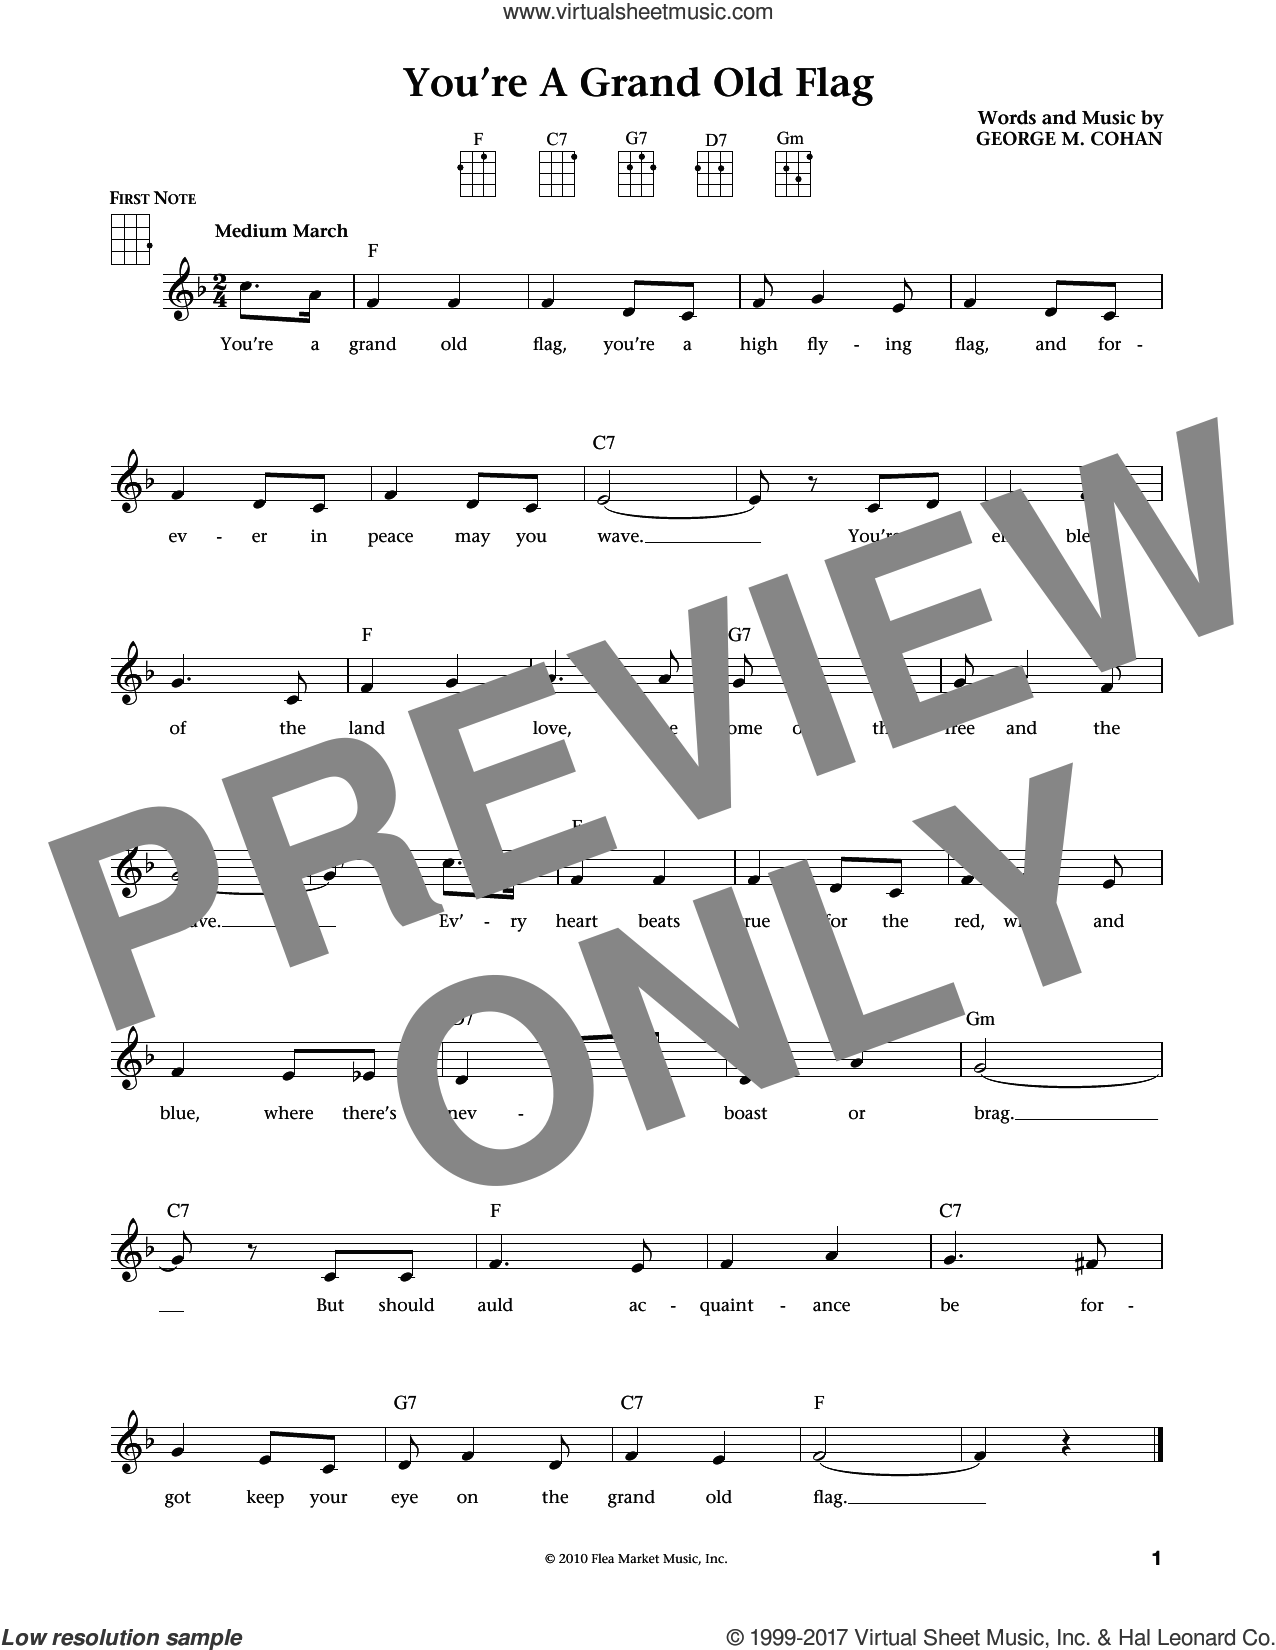 You're A Grand Old Flag (from The Daily Ukulele) (arr. Liz and Jim Beloff) sheet music for ukulele by George Cohan, Jim Beloff and Liz Beloff, intermediate skill level